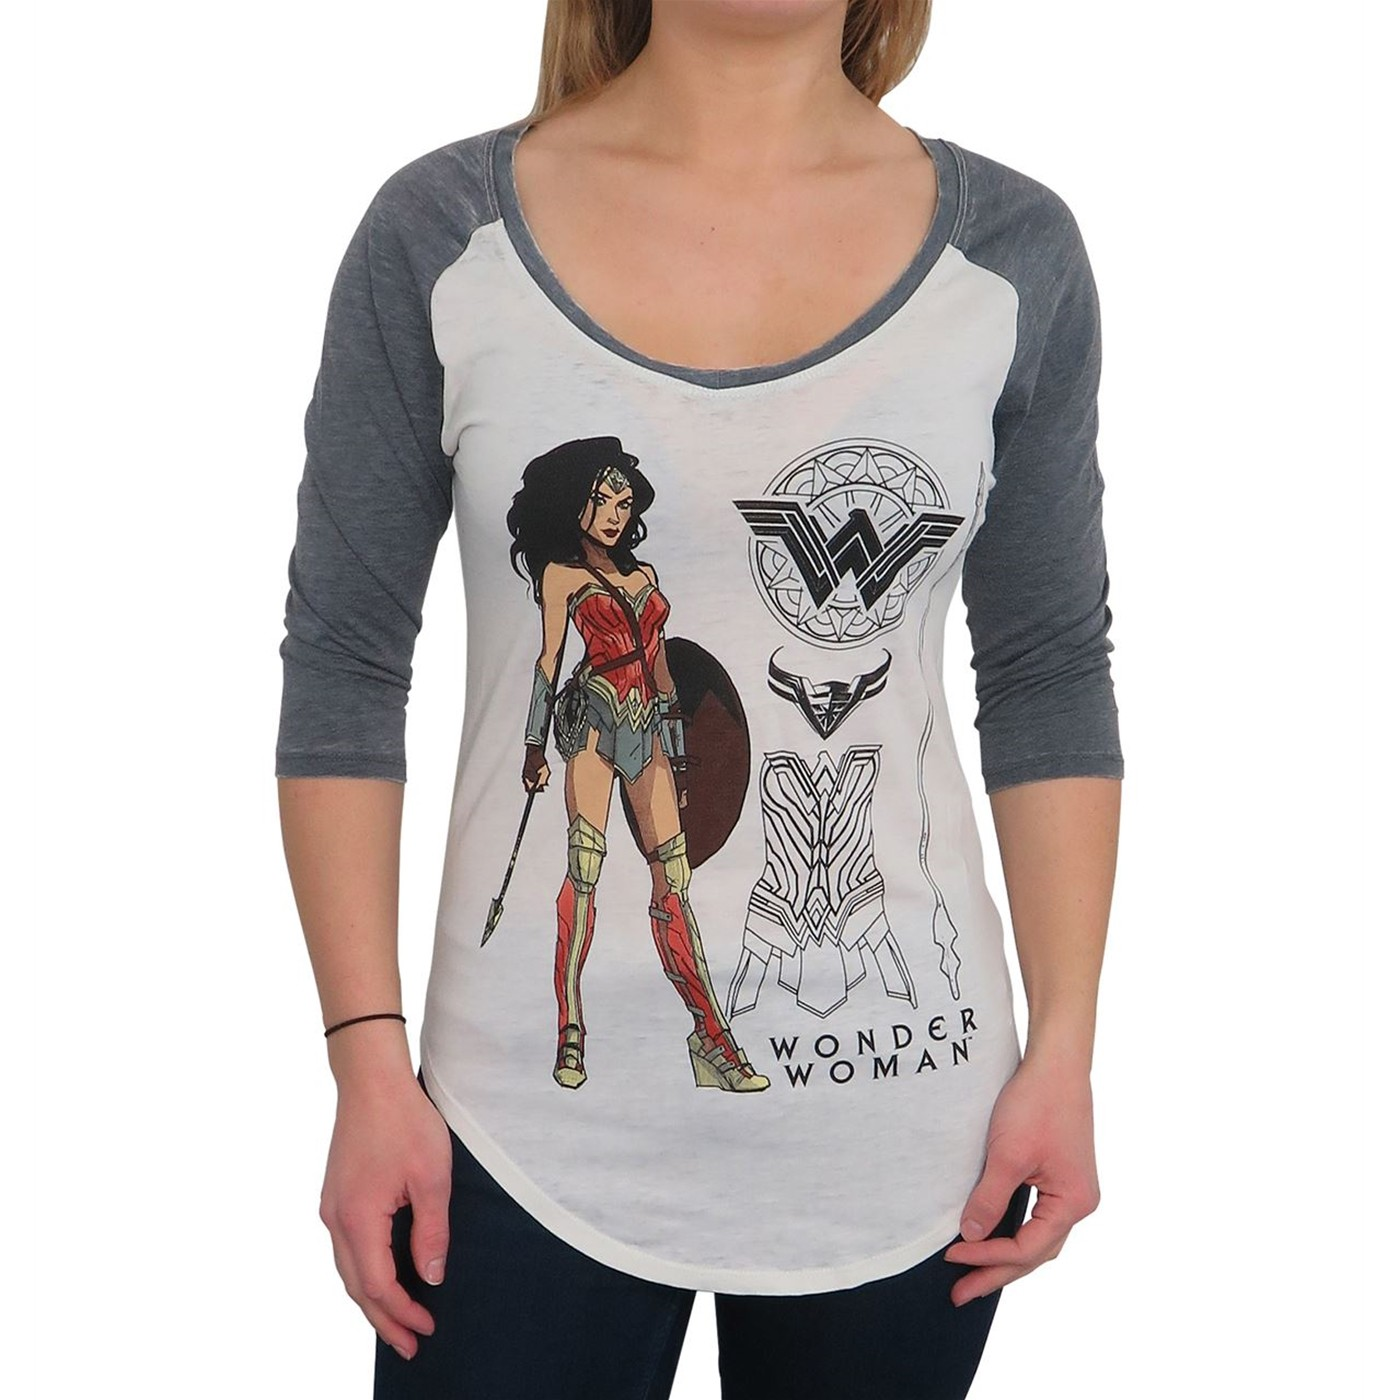 Wonder Woman langärmeliges T-Shirt für Frauen